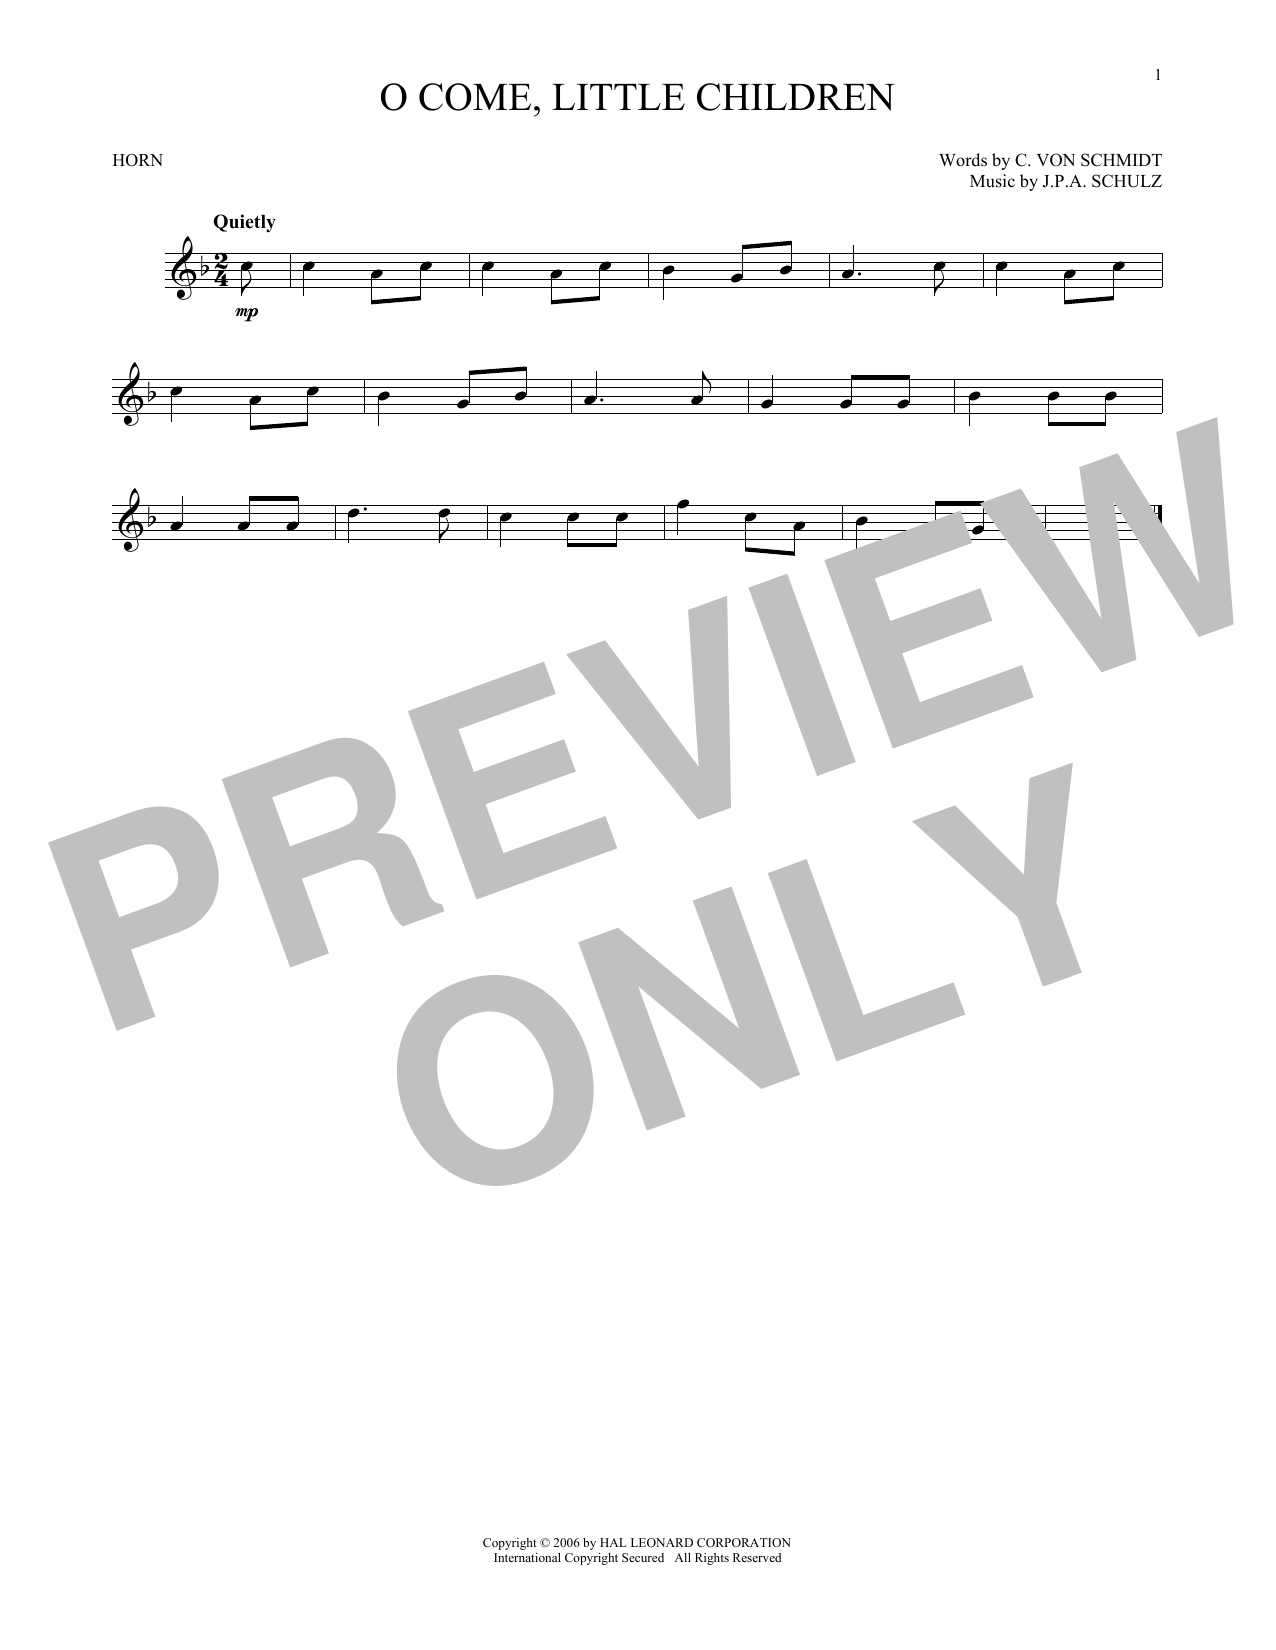 O Come, Little Children (French Horn Solo)